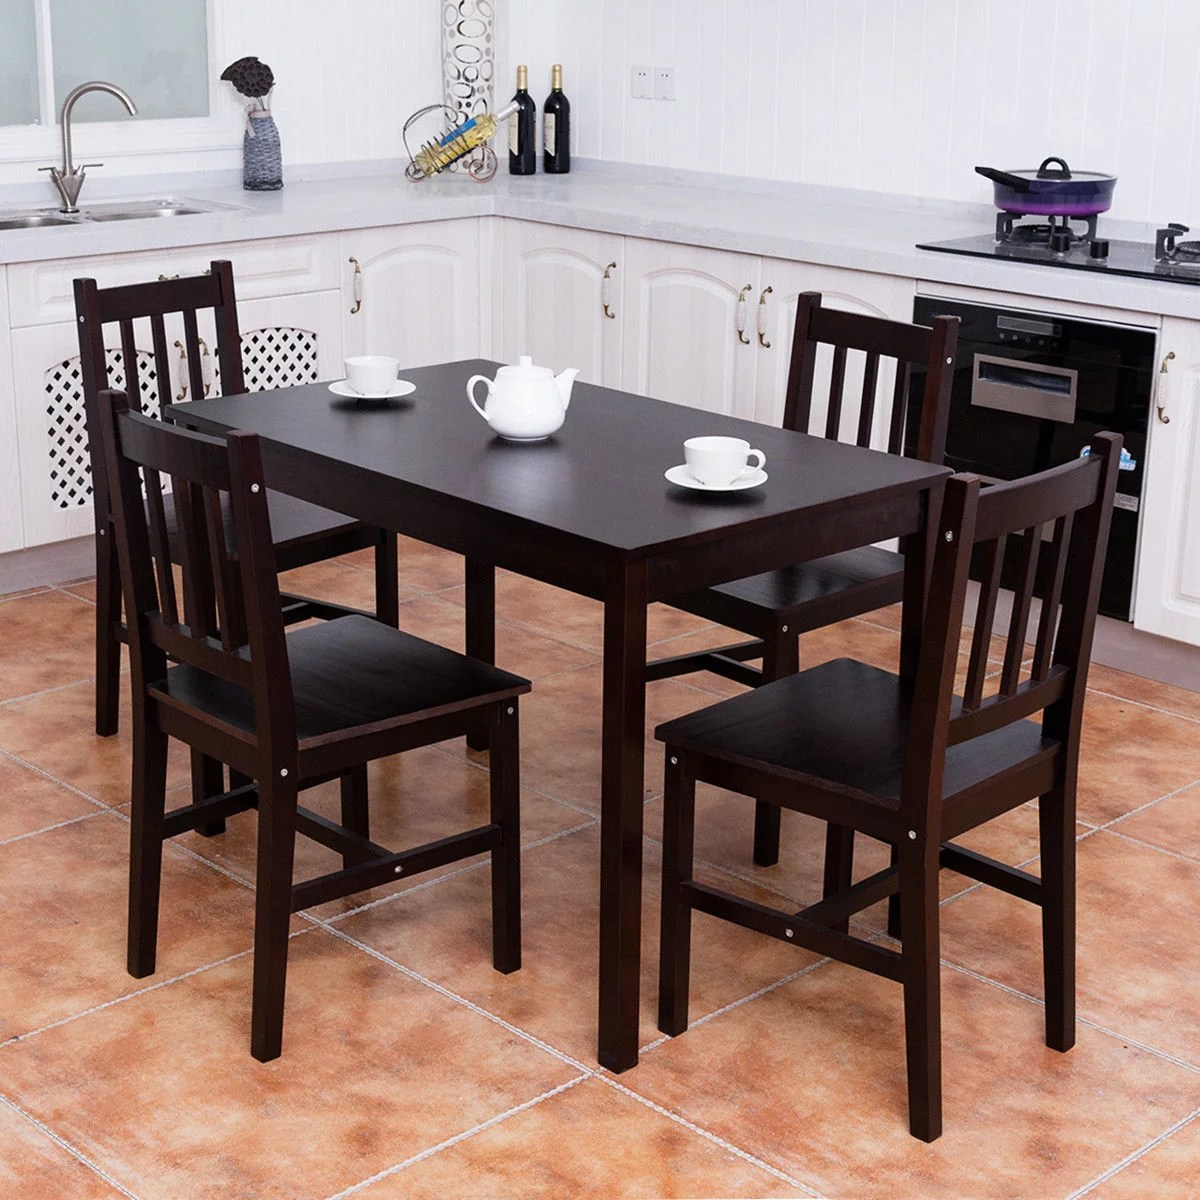 Kitchen Chairs Wood Costway 5pcs Solid Pine Wood Dining Set Table And 4 Chairs Home Kitchen Furniture Brown